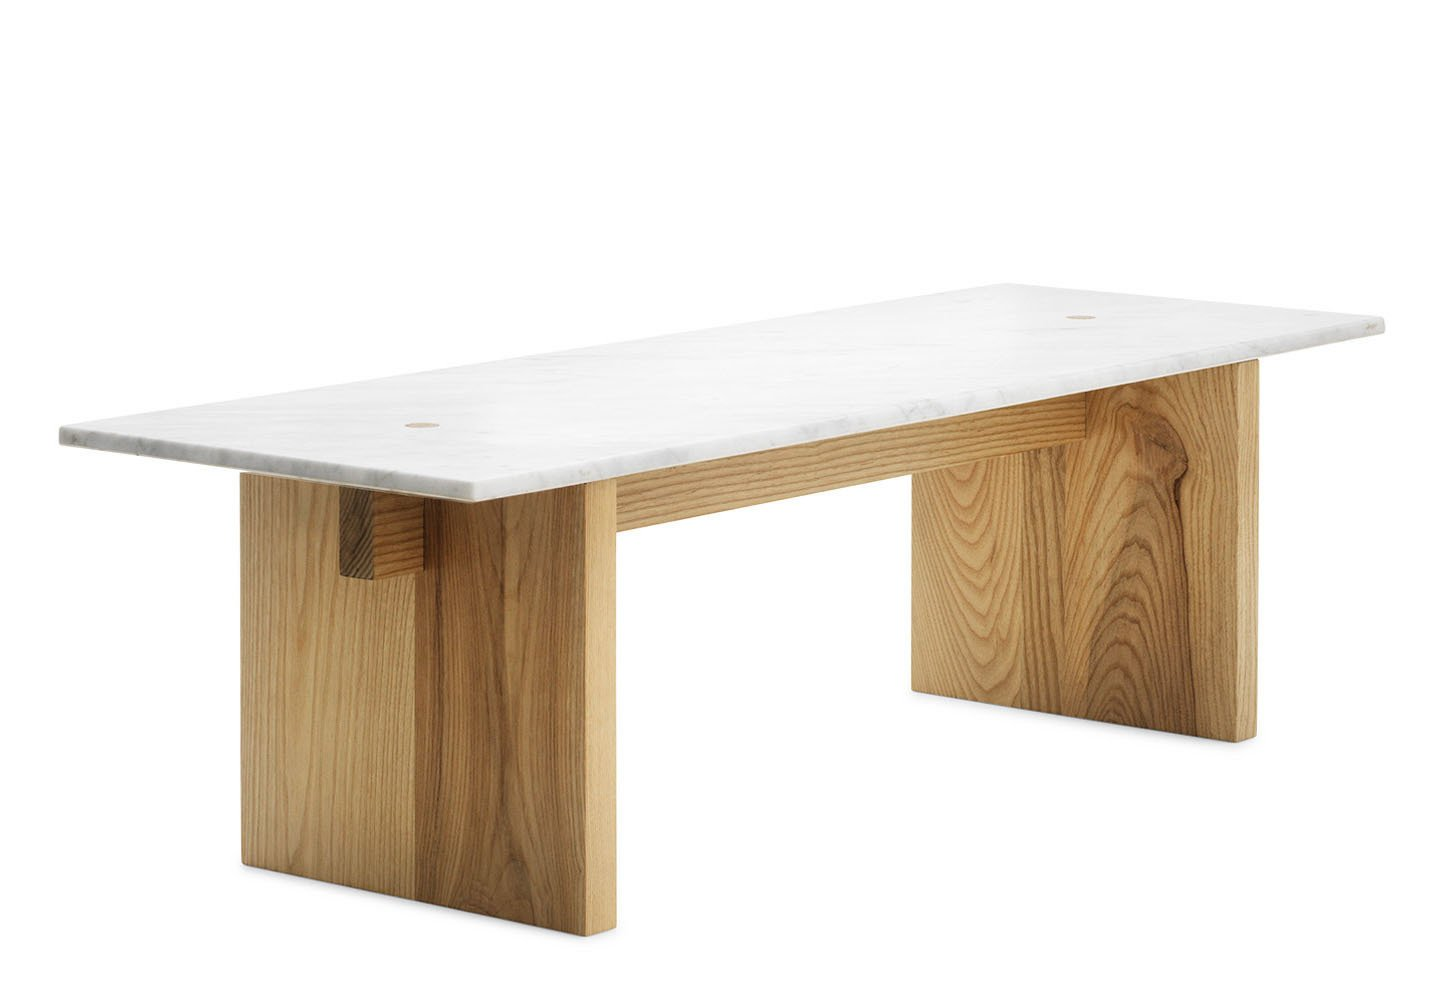 Photo 2 of 2 in Solid Table from Normann Copenhagen